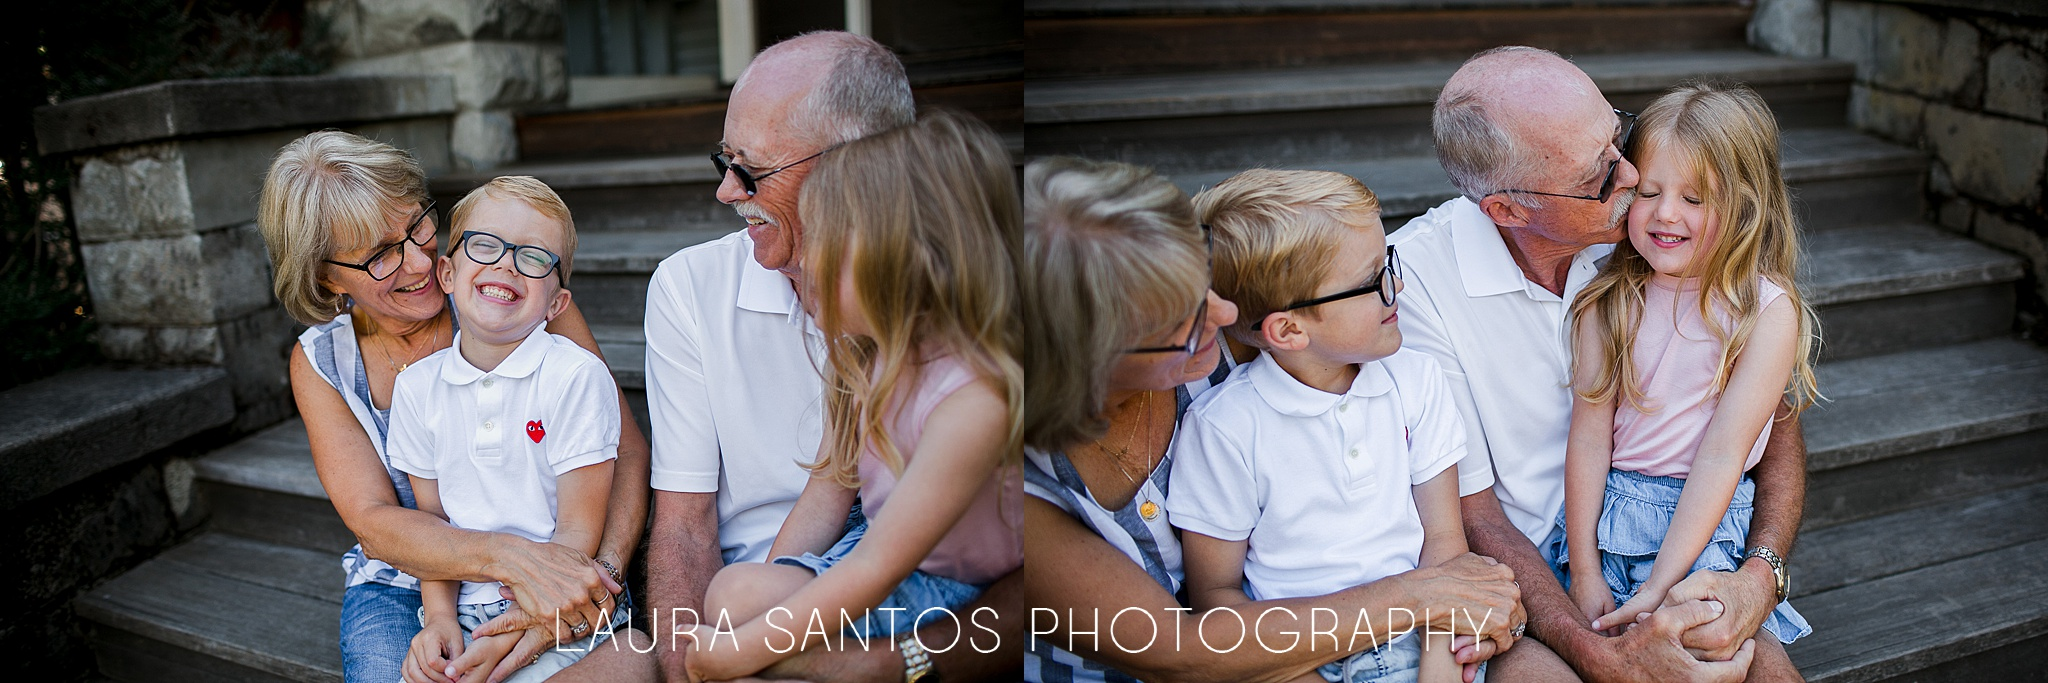 Laura Santos Photography Portland Oregon Family Photographer_1186.jpg